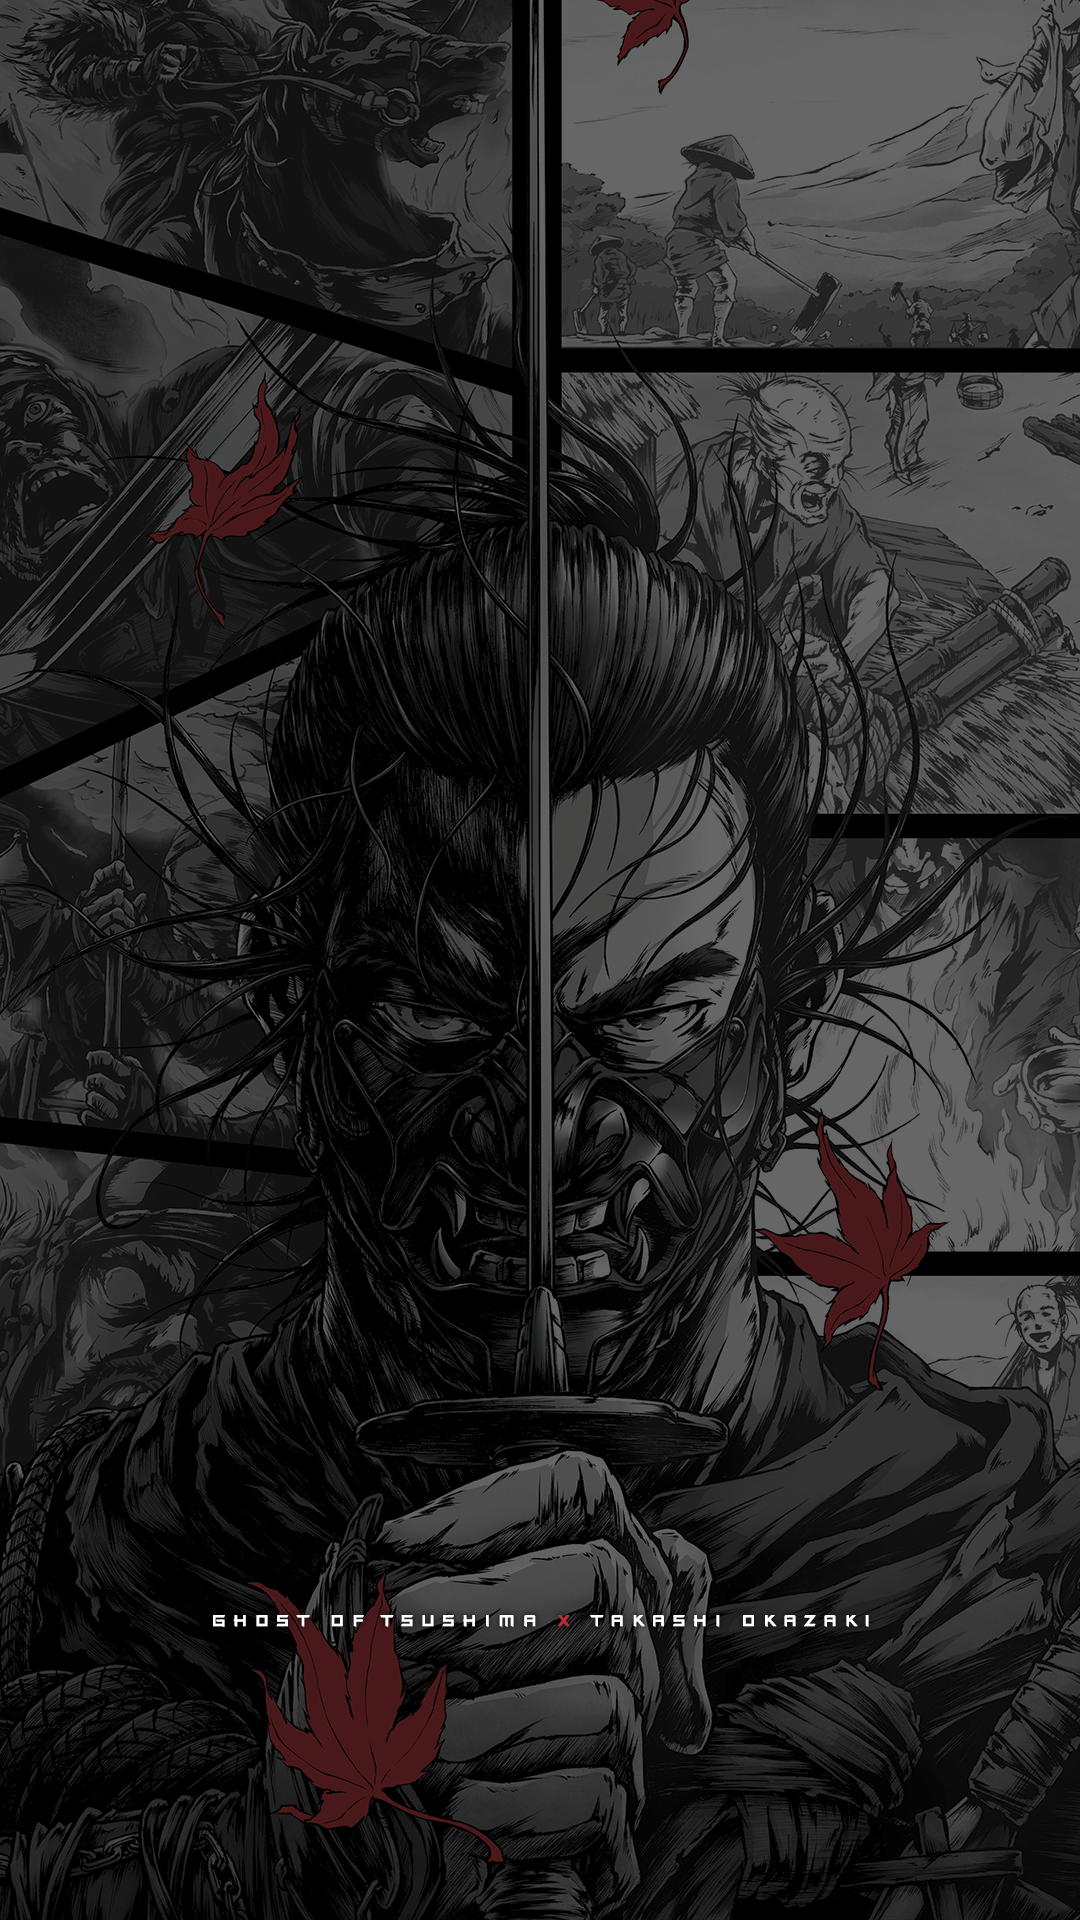 Ghost of Tsushima key dark manga mobile wallpaper